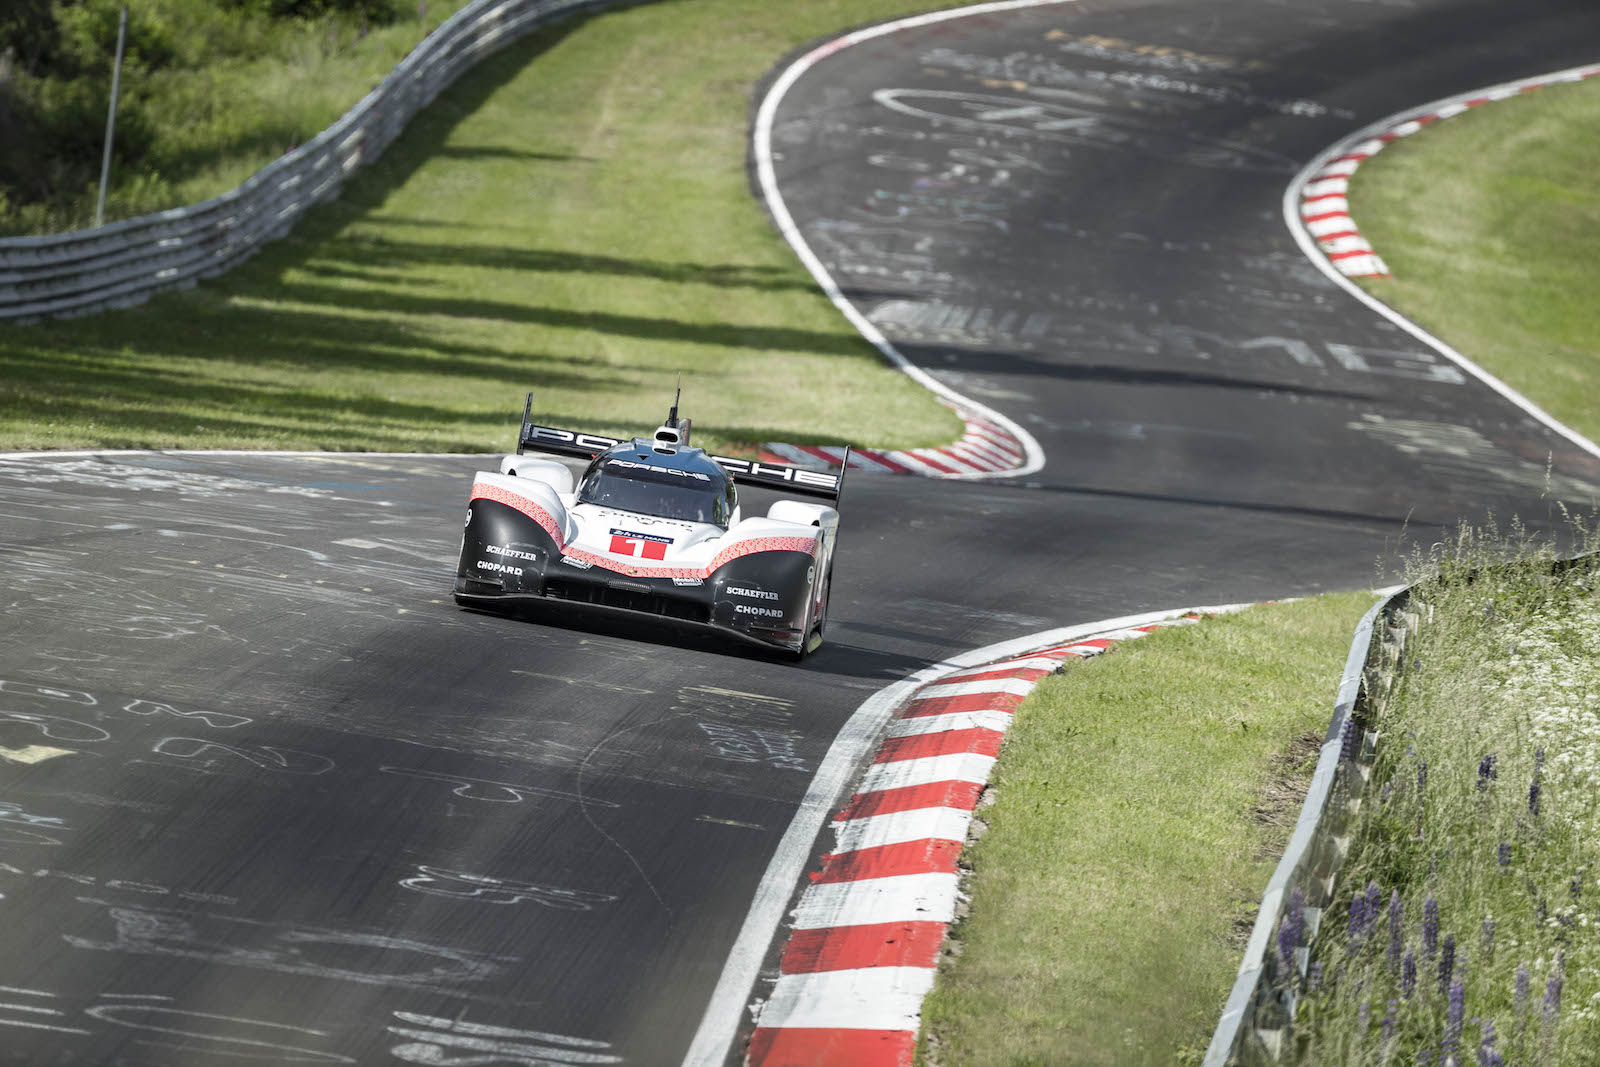 timo bernhard claims nurb rgring lap record in porsche 919 ferdinand. Black Bedroom Furniture Sets. Home Design Ideas